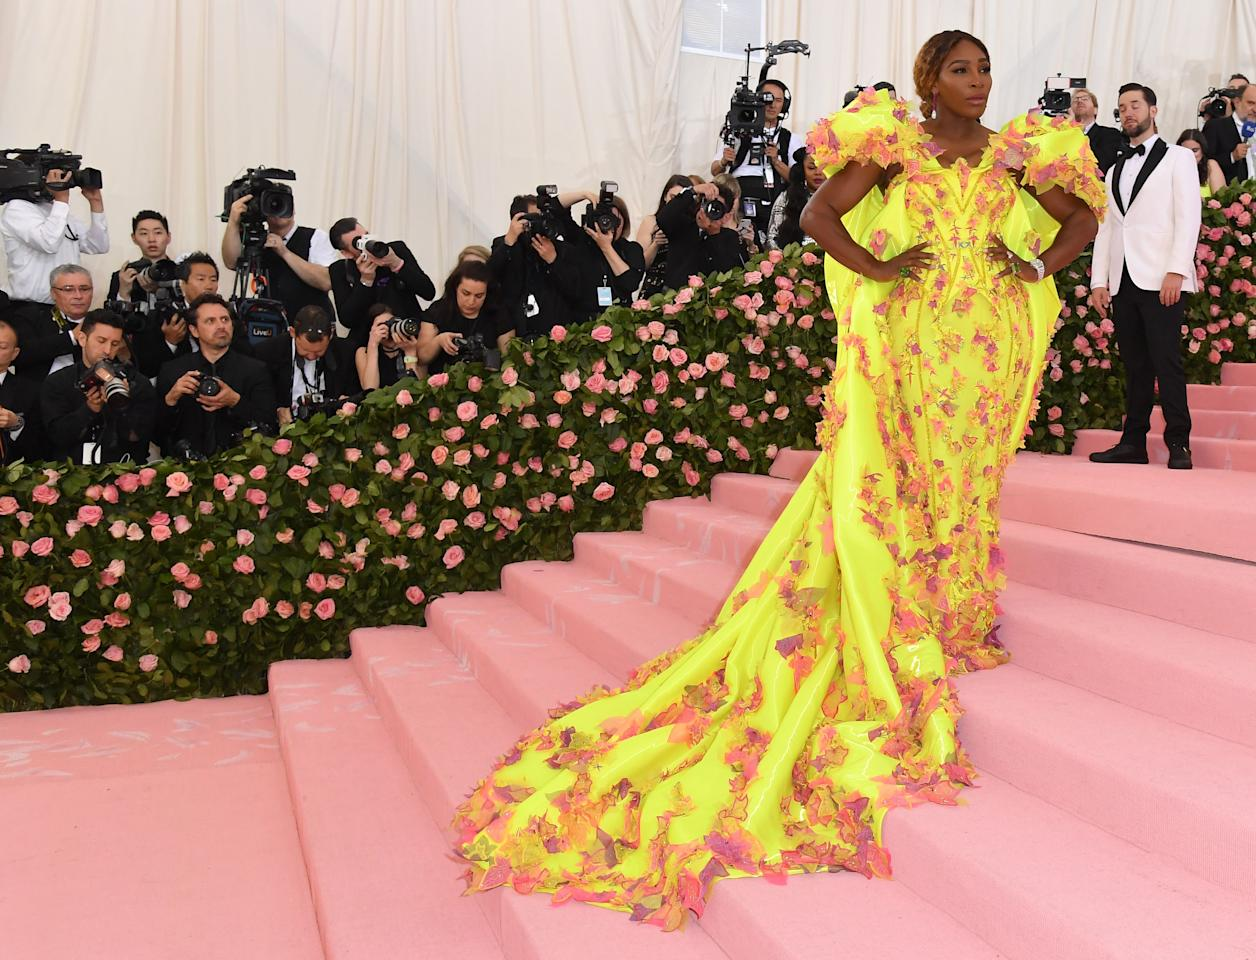 Tennis superstar and co-chair of this year's gala, Serena Williams stepped out in a custom neon yellow strong-shouldered Versace gown with pink feathered detailing and a leaf appliqué. She matched the show-stopping look with yellow Nike sneakers before joining husband, Alexis Ohanian, who called himself a 'proud husband tonight'. Photo: Getty Images